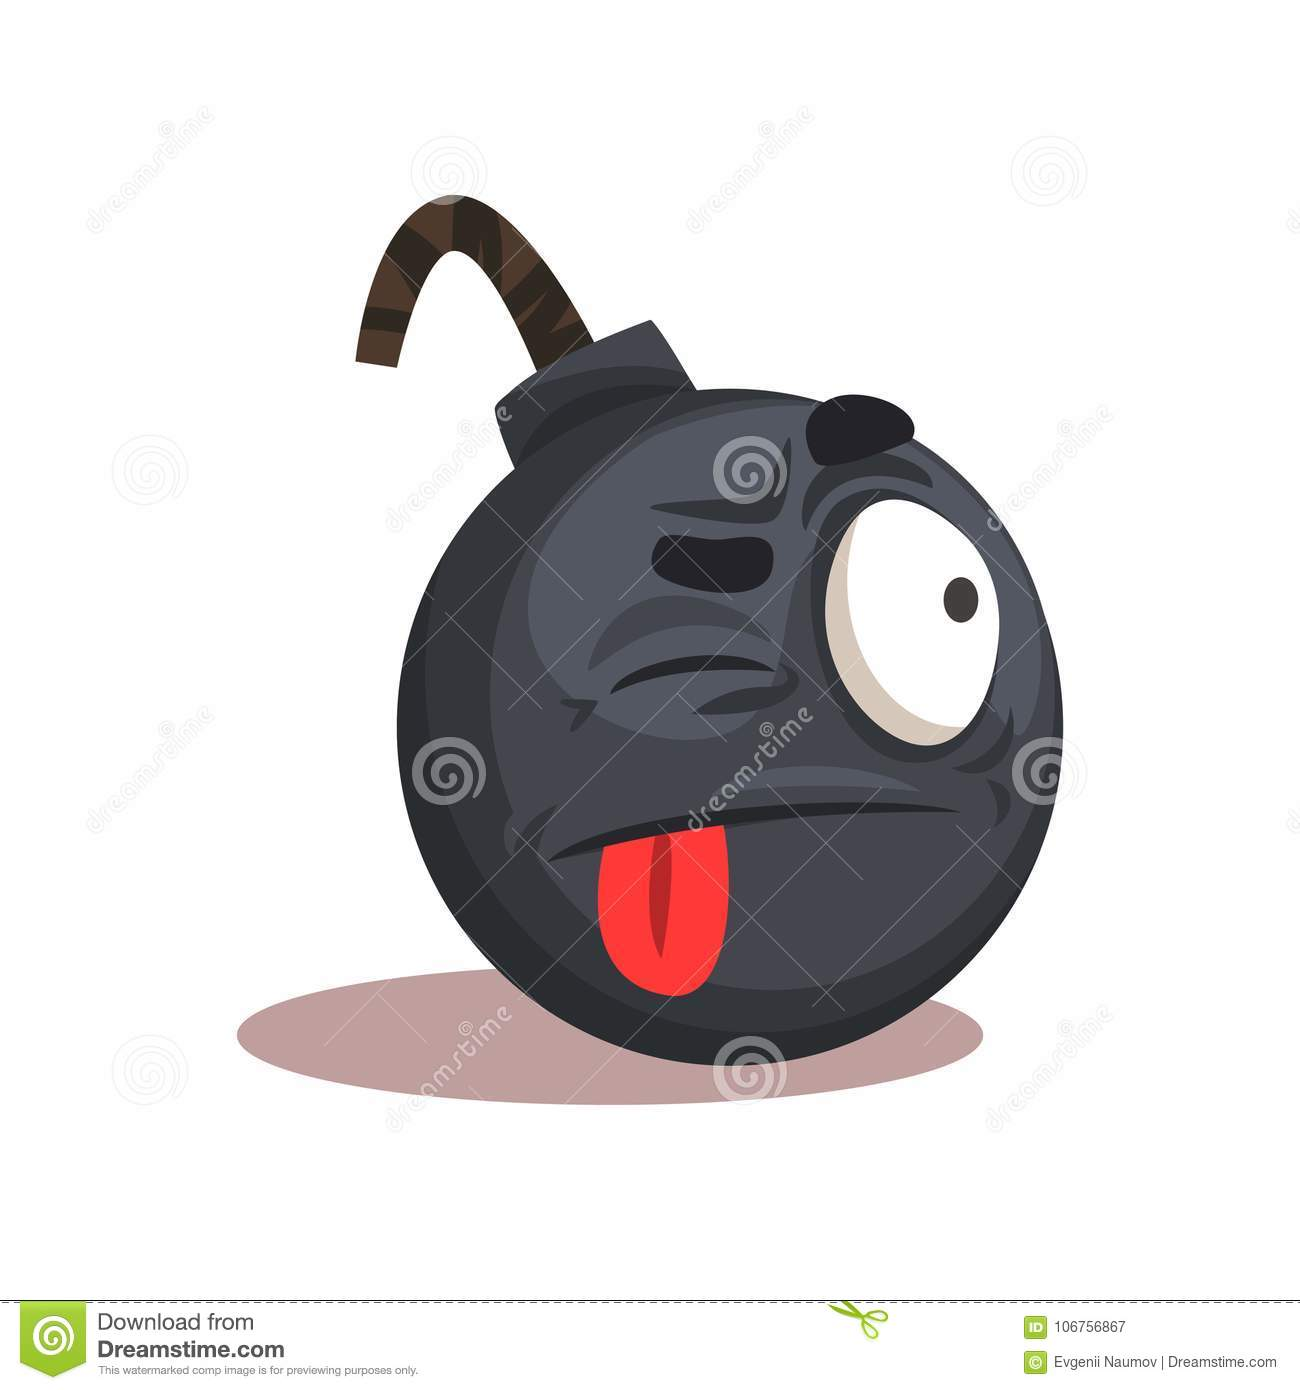 Flat Vector Design Of Bomb Emoji  Face With Winking Eye And Red